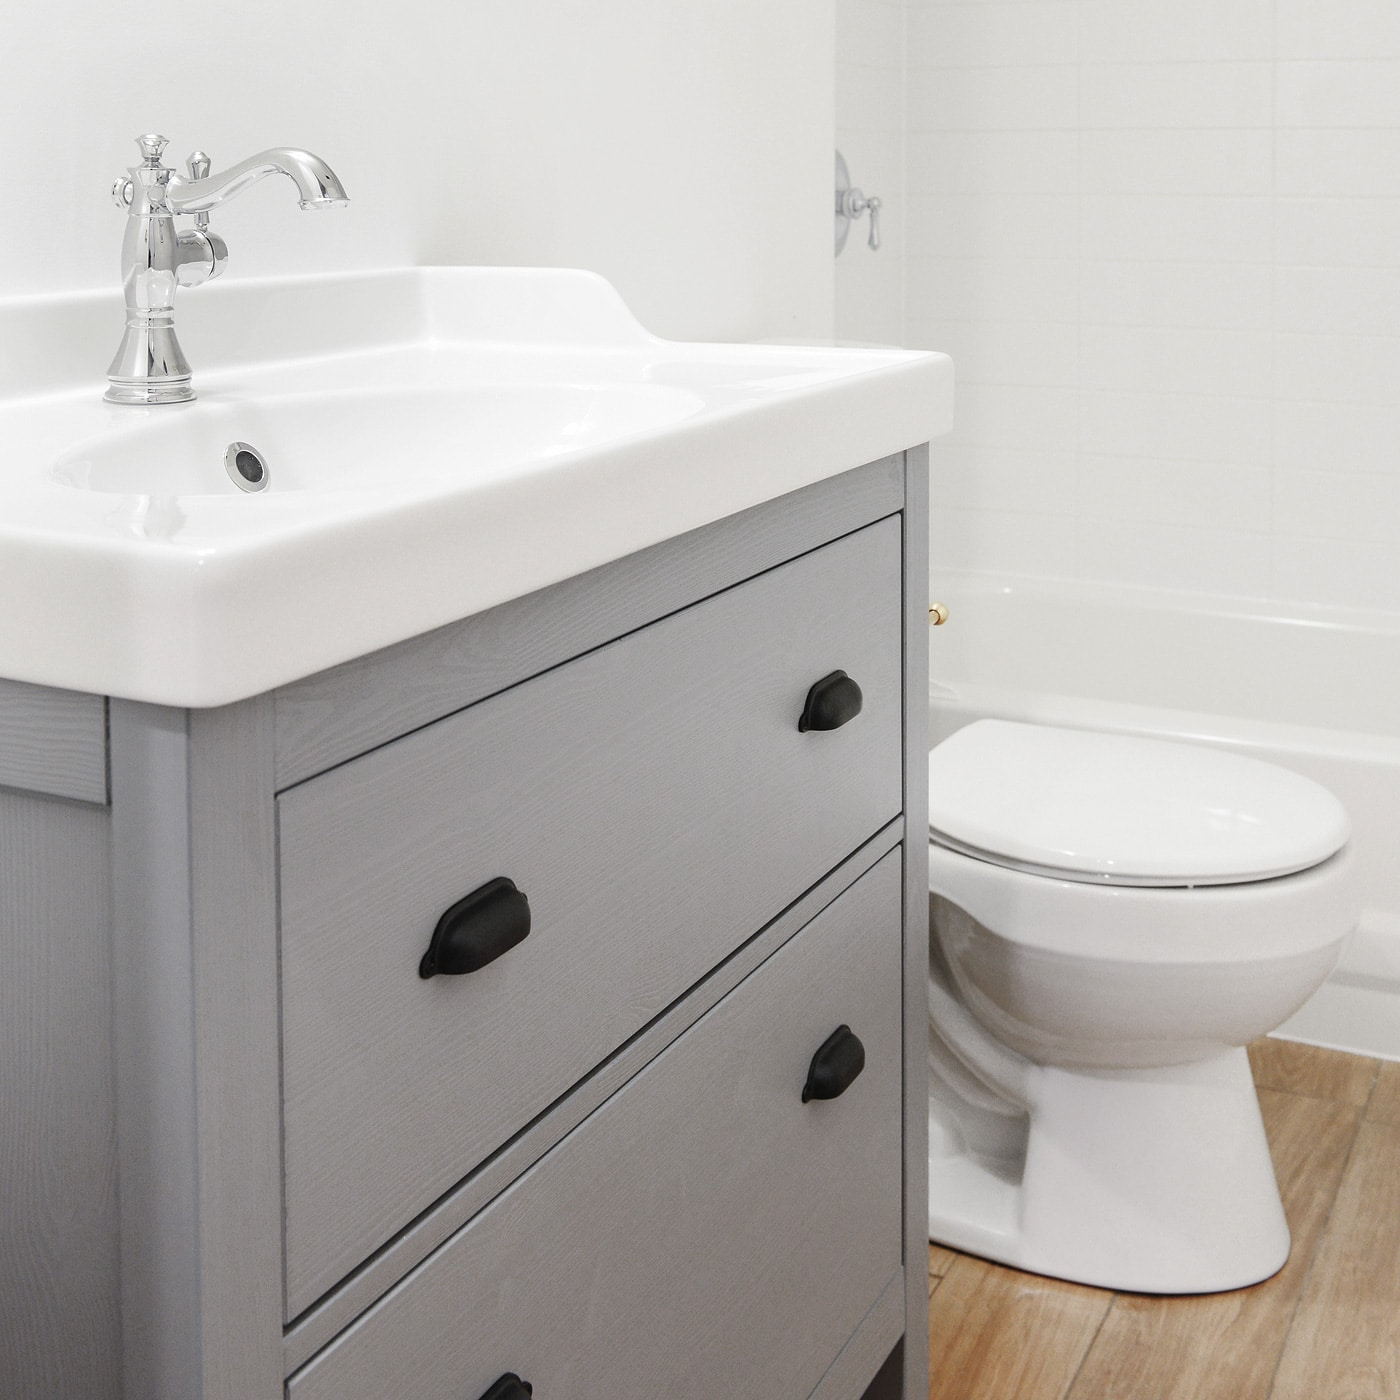 what makes an ikea vanity stand out